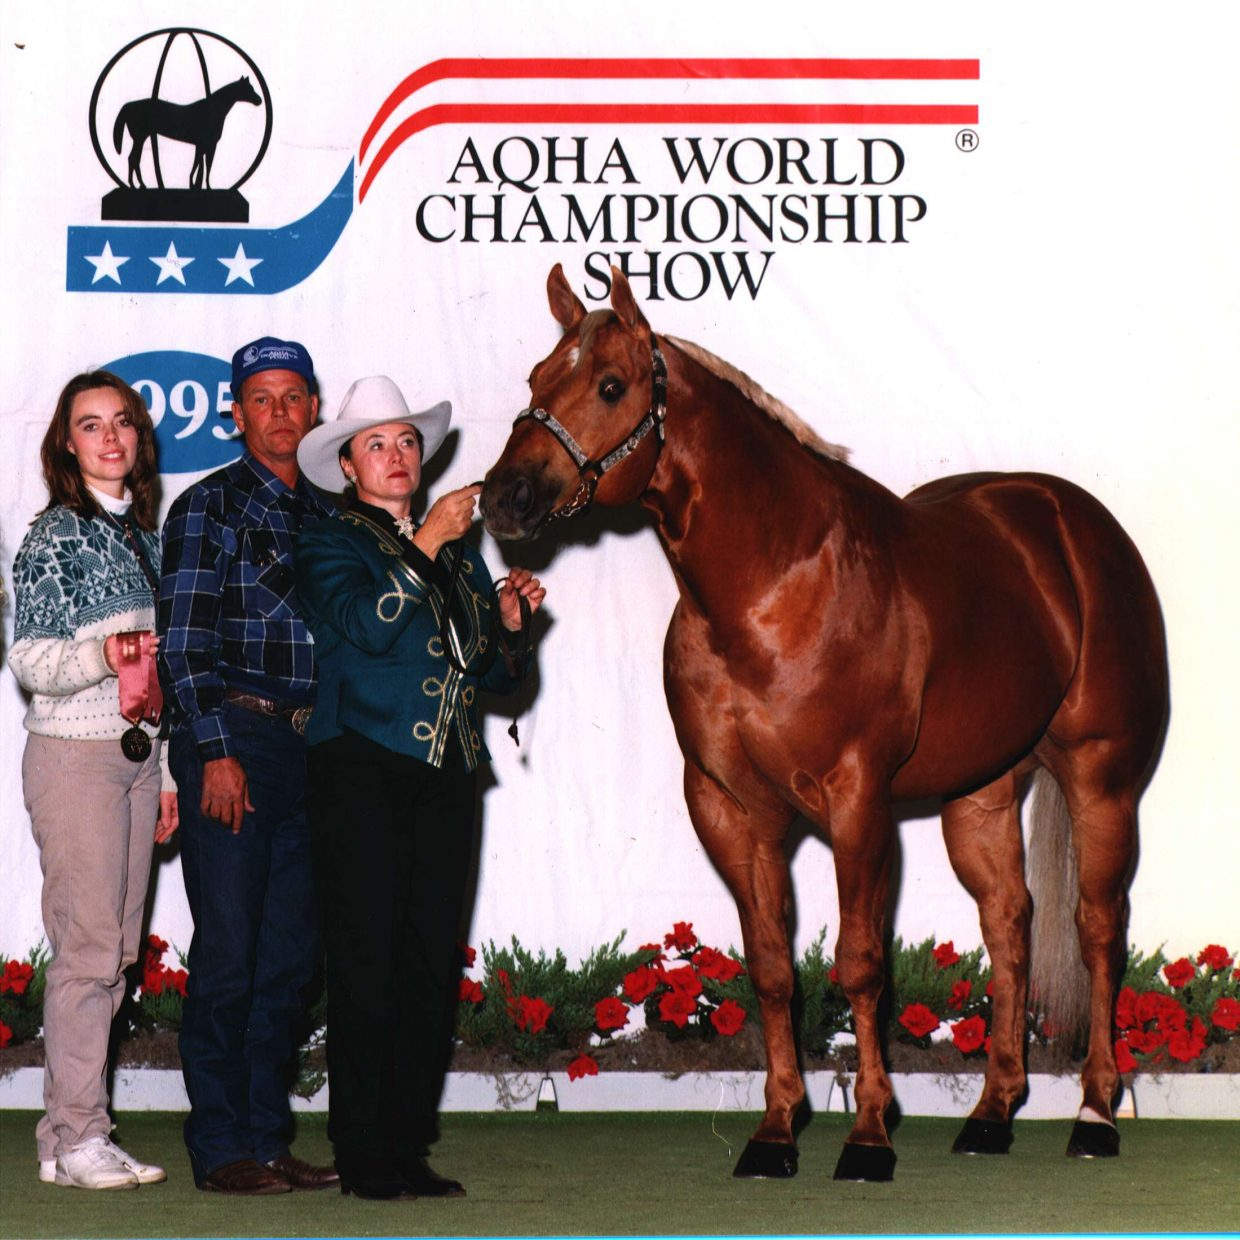 Sutton's Solid Gold Edition was a ranch stallion who achieved fourth in the nation in 1995 aged stallions. Pictured here are Heather, Ray, and Georga at the AQHA World Show